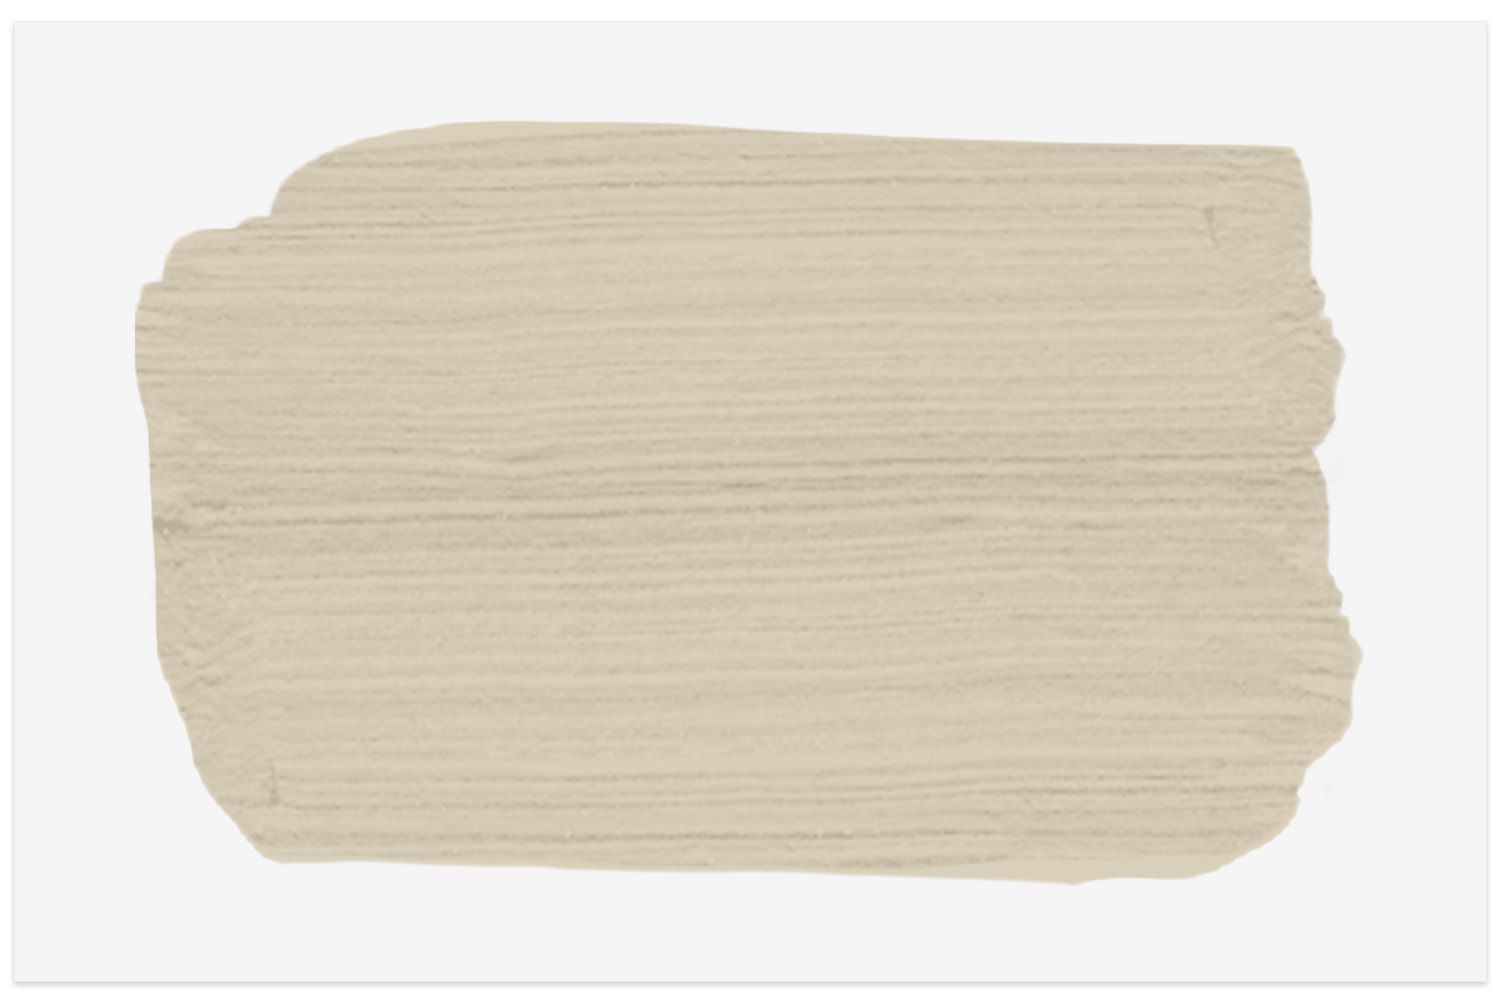 Wool Skein paint swatch from Sherwin-Williams